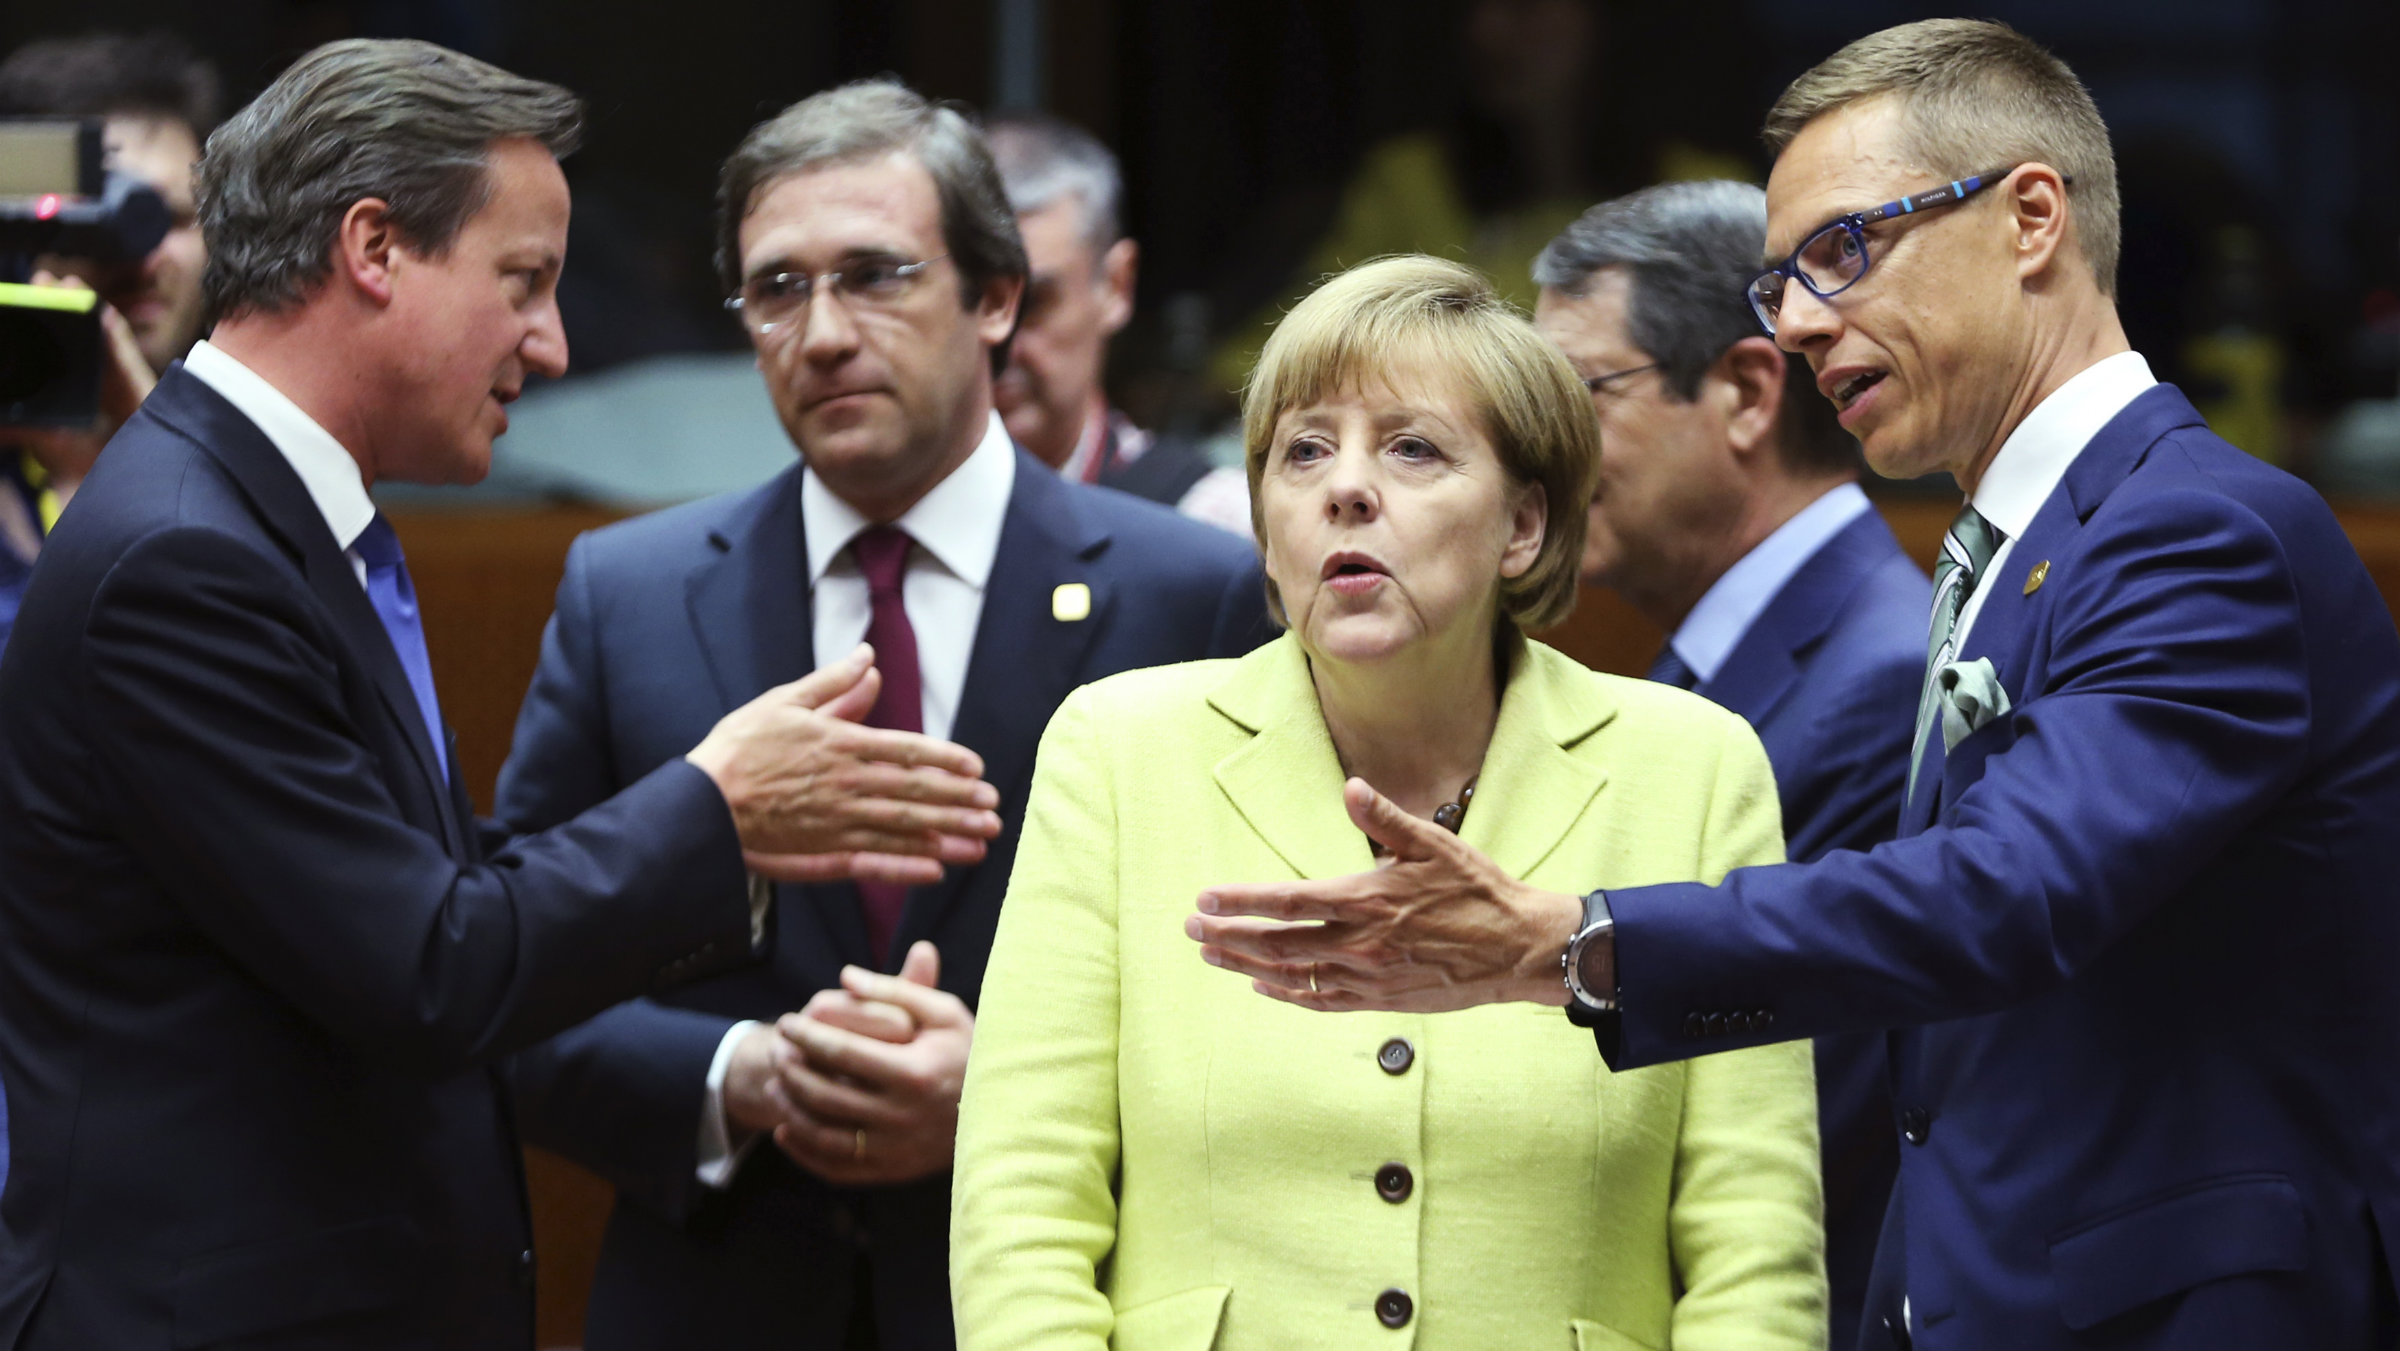 Britain's Prime Minister David Cameron, Portugal's Prime Minister Pedro Passos Coelho, Germany's Chancellor Angela Merkel and Finland's Prime Minister Alexander Stubb attend an European Union leaders summit in Brussels.